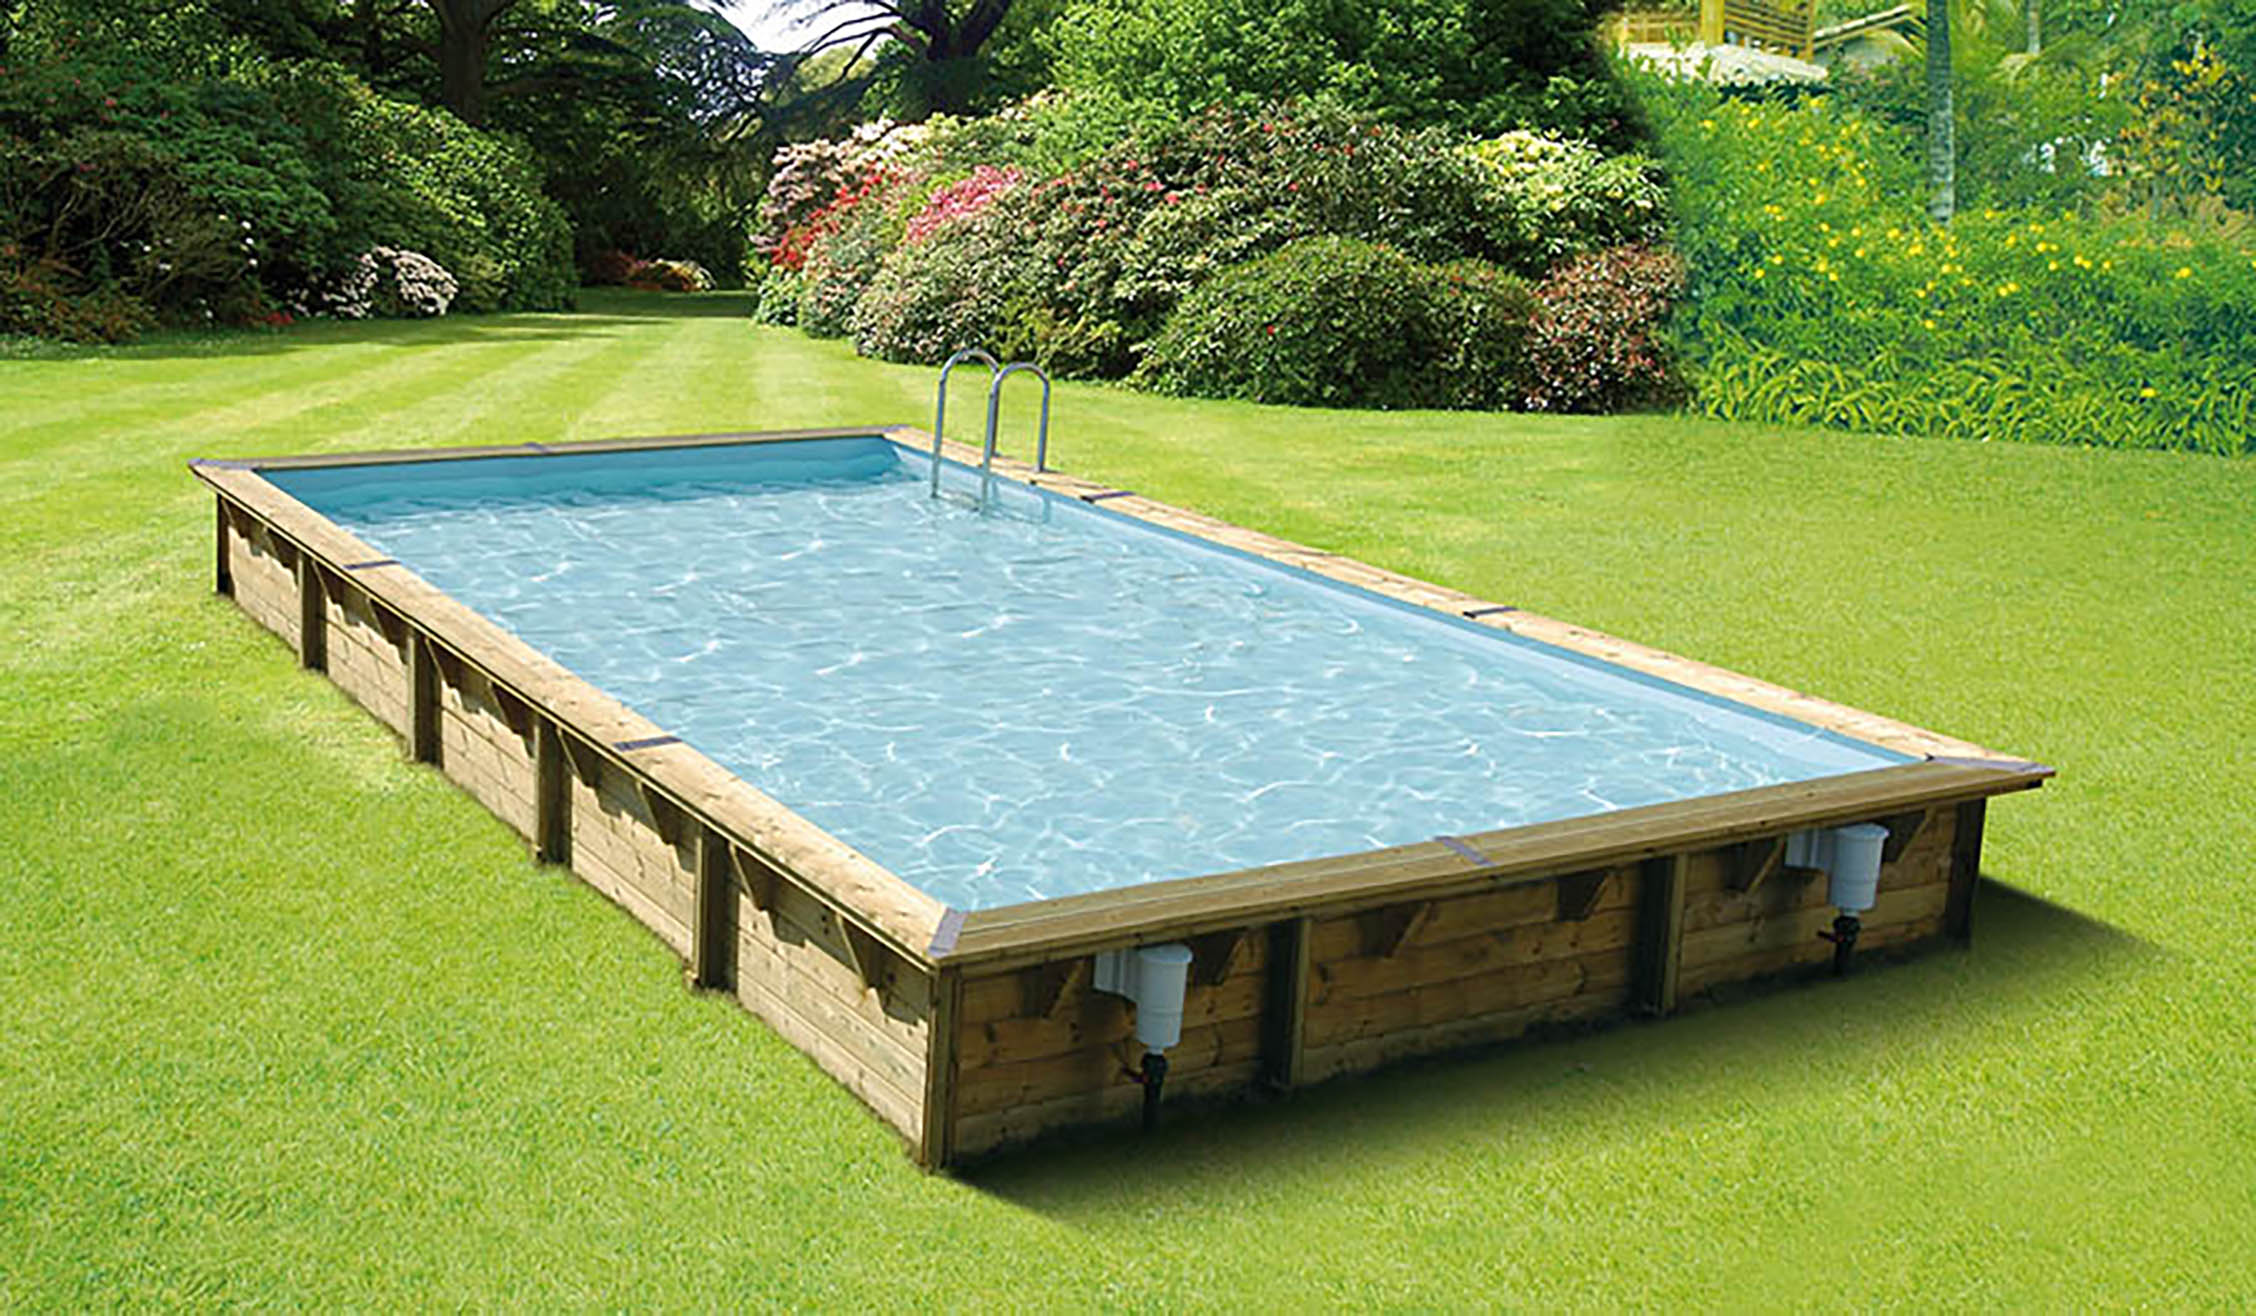 Amenagement piscine bois hors sol id es for Amenagement piscine